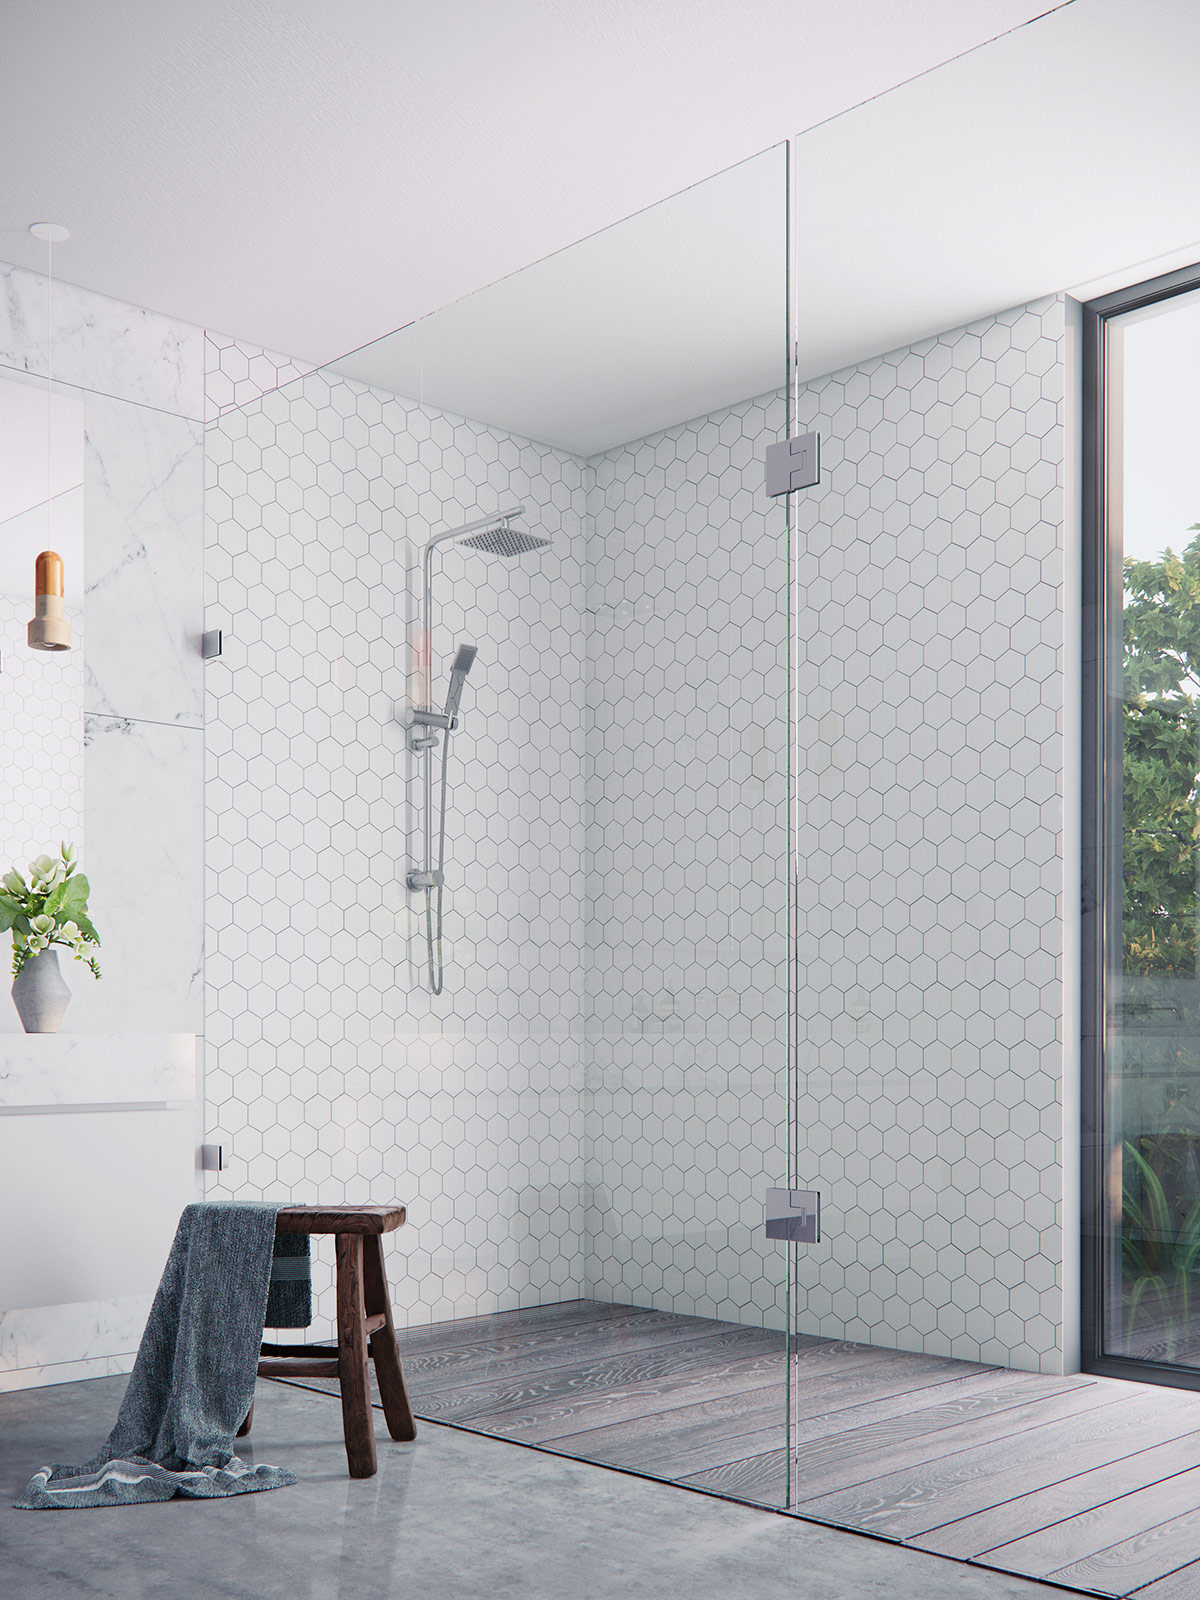 ScreenAge-3D-product-rendering-bathroom-melbourne